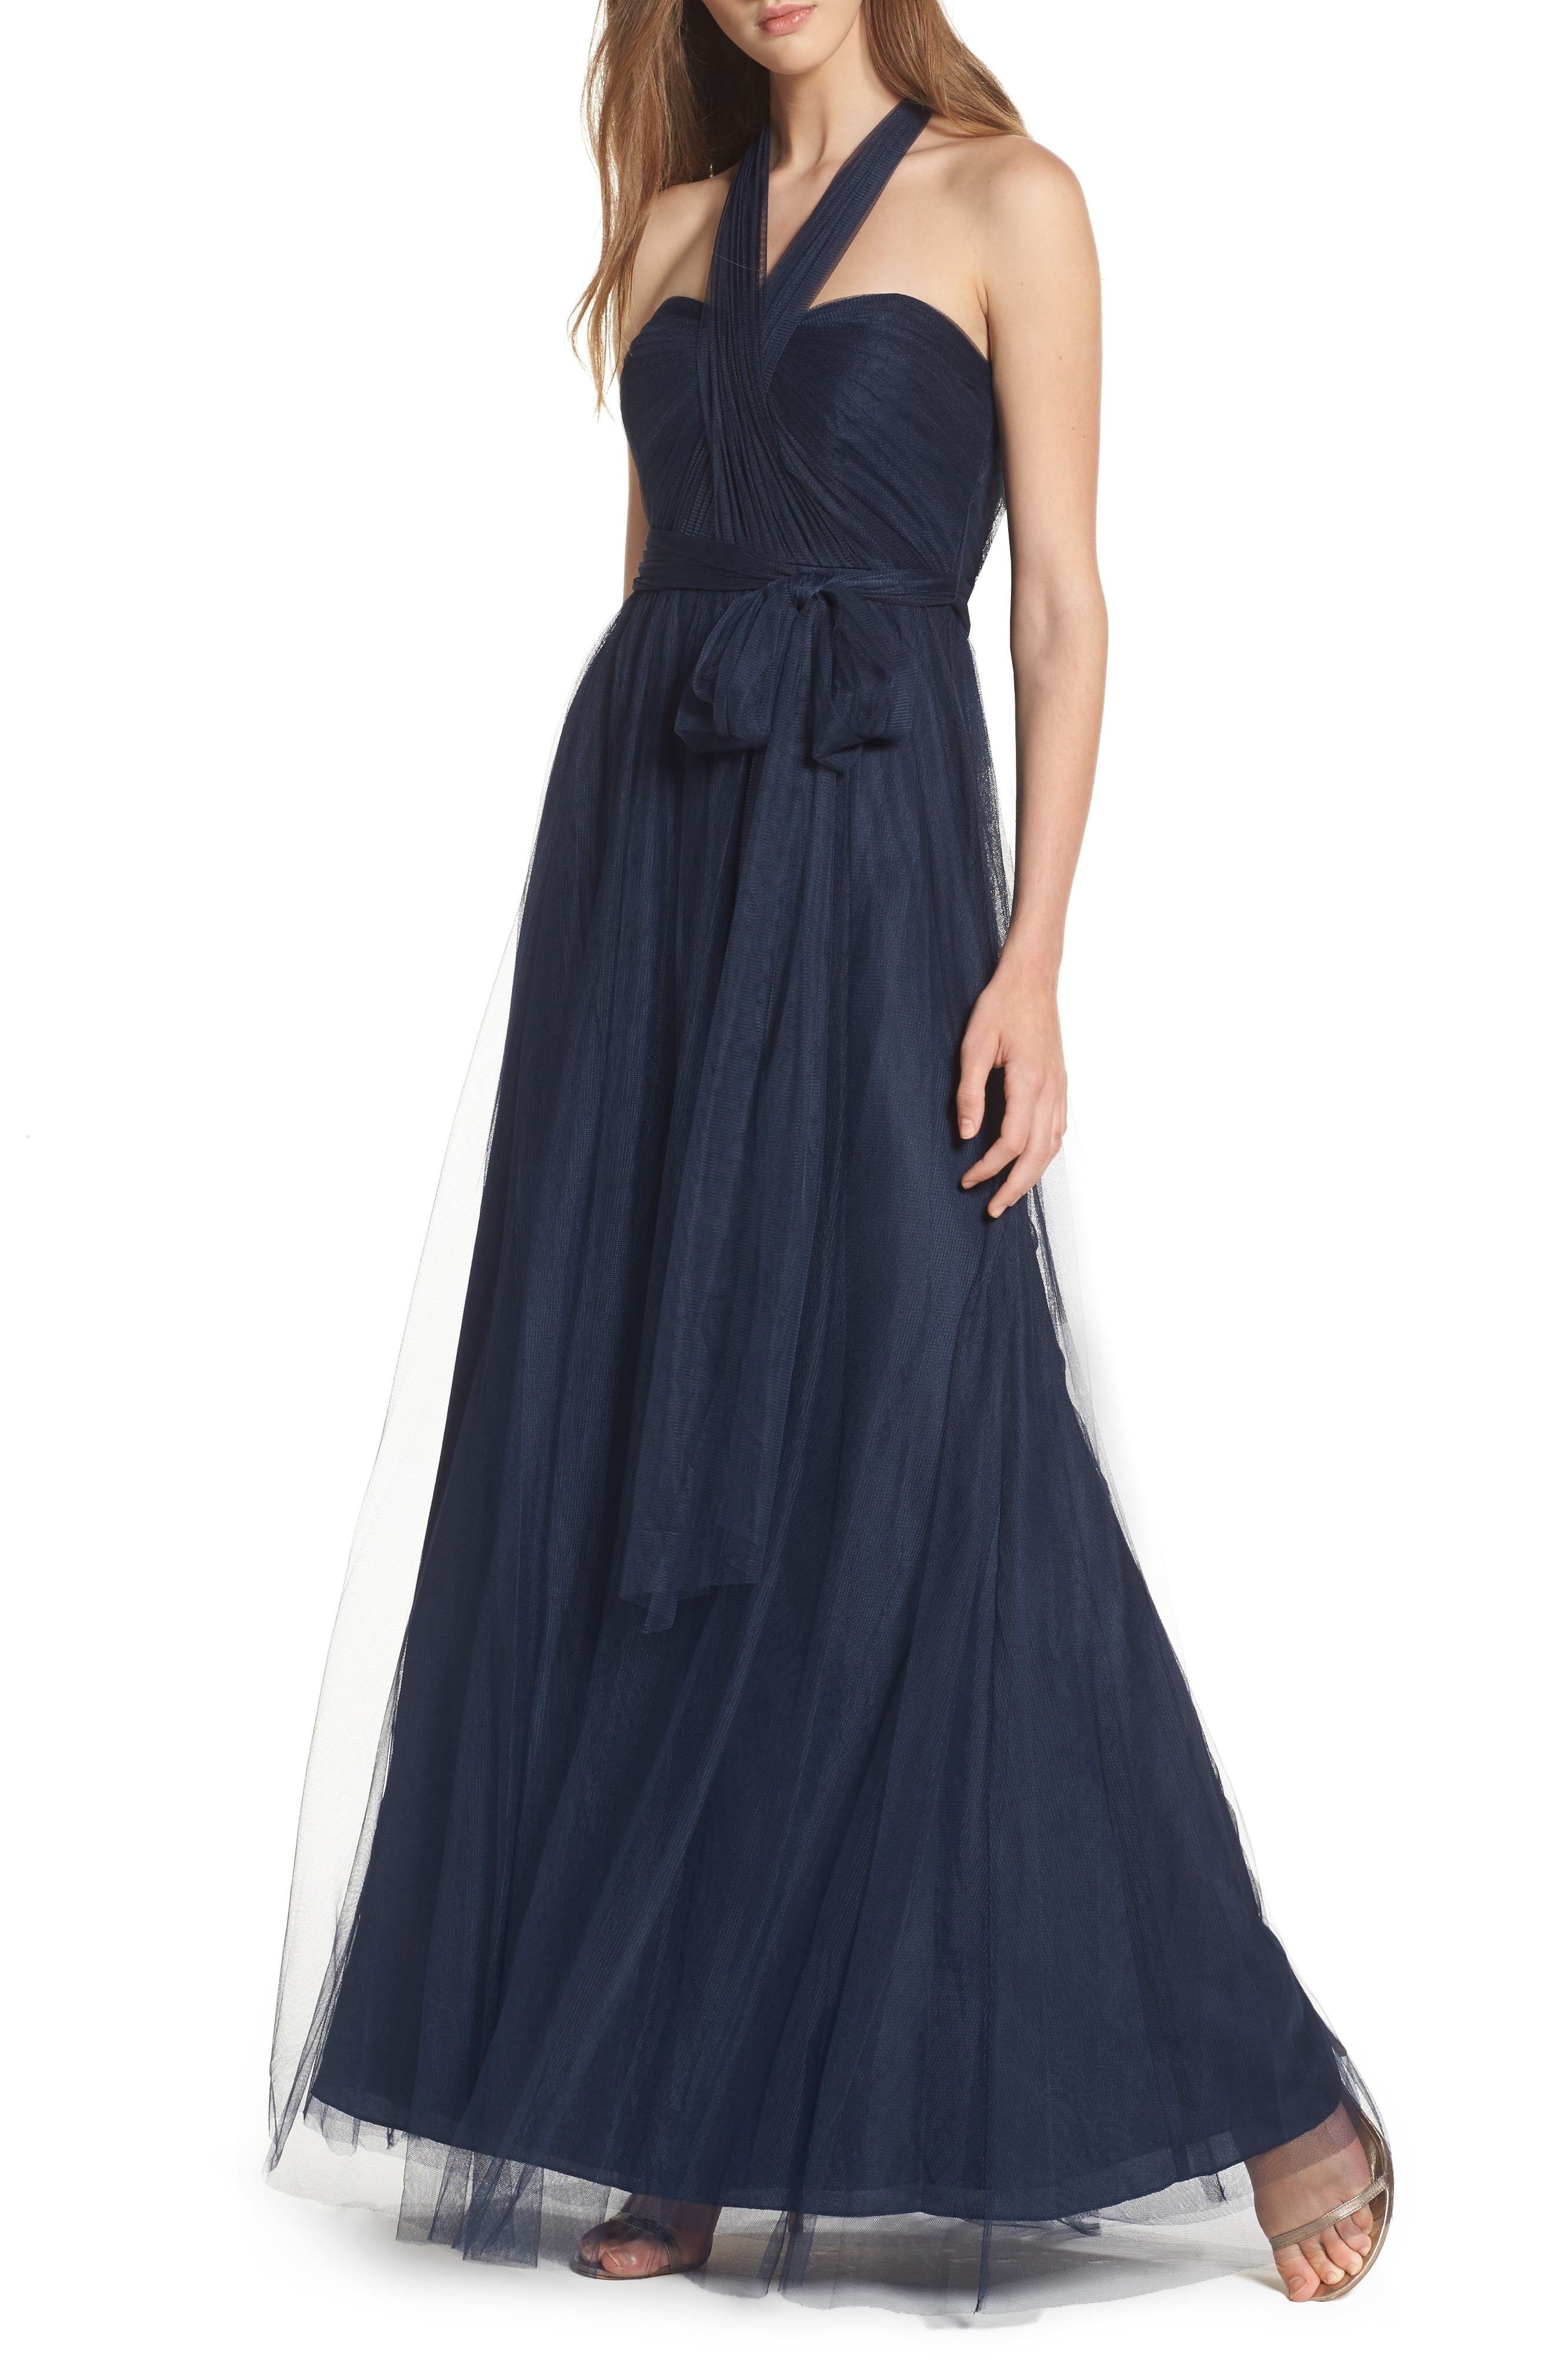 Annabelle Convertible Tulle Column Dress,                         Main,                         color, NAVY